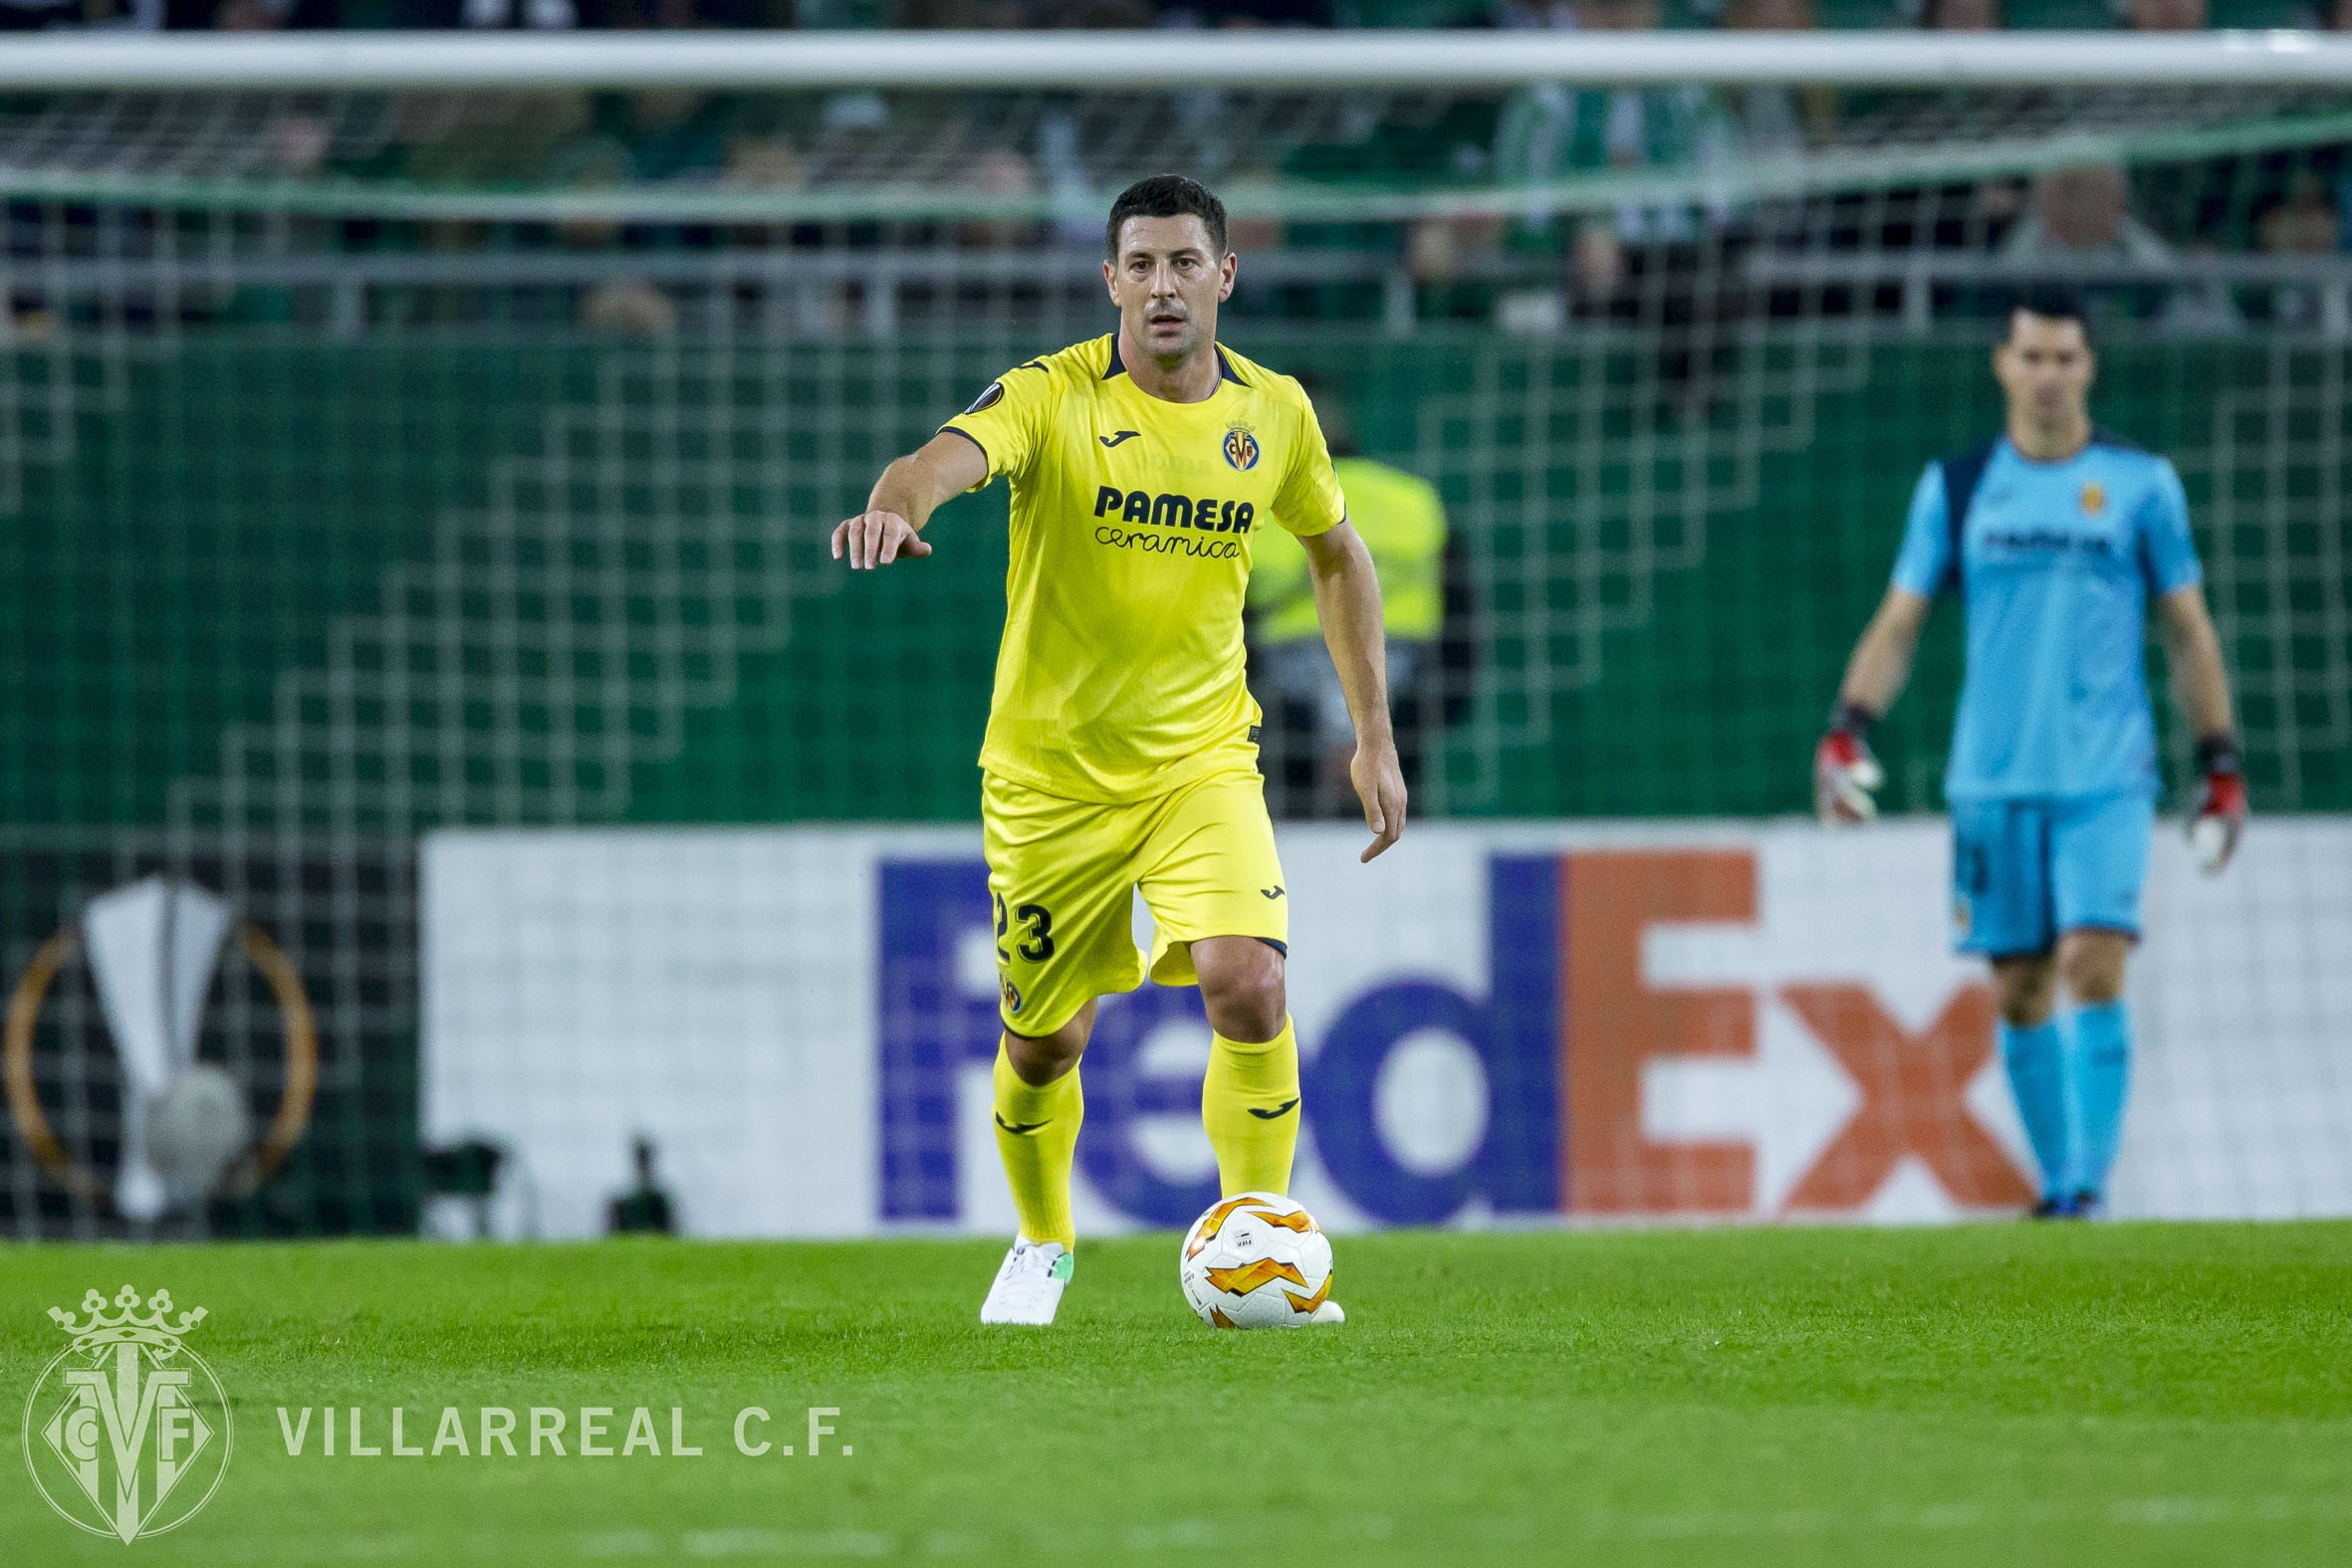 Daniele Bonera Experience And Class Villarreal Cf Off The Pitch